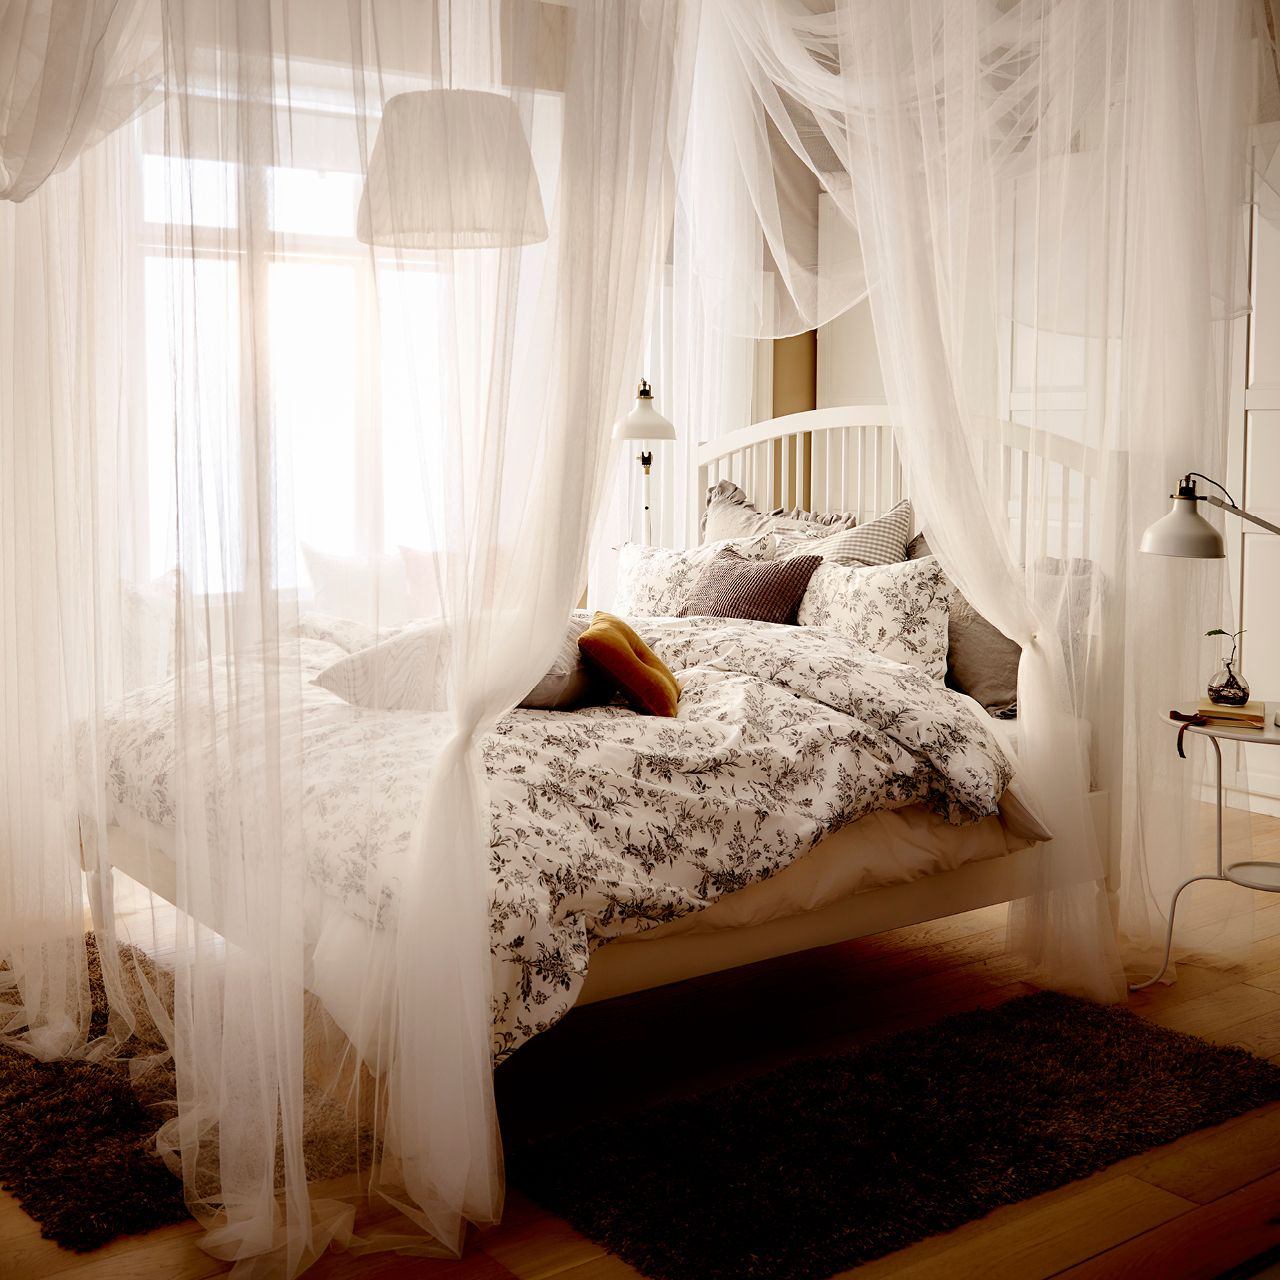 Elegant Bedrooms Adorable An Elegant Bedroom Canopy  You'd Be Surprised How Easy It Is To Design Inspiration